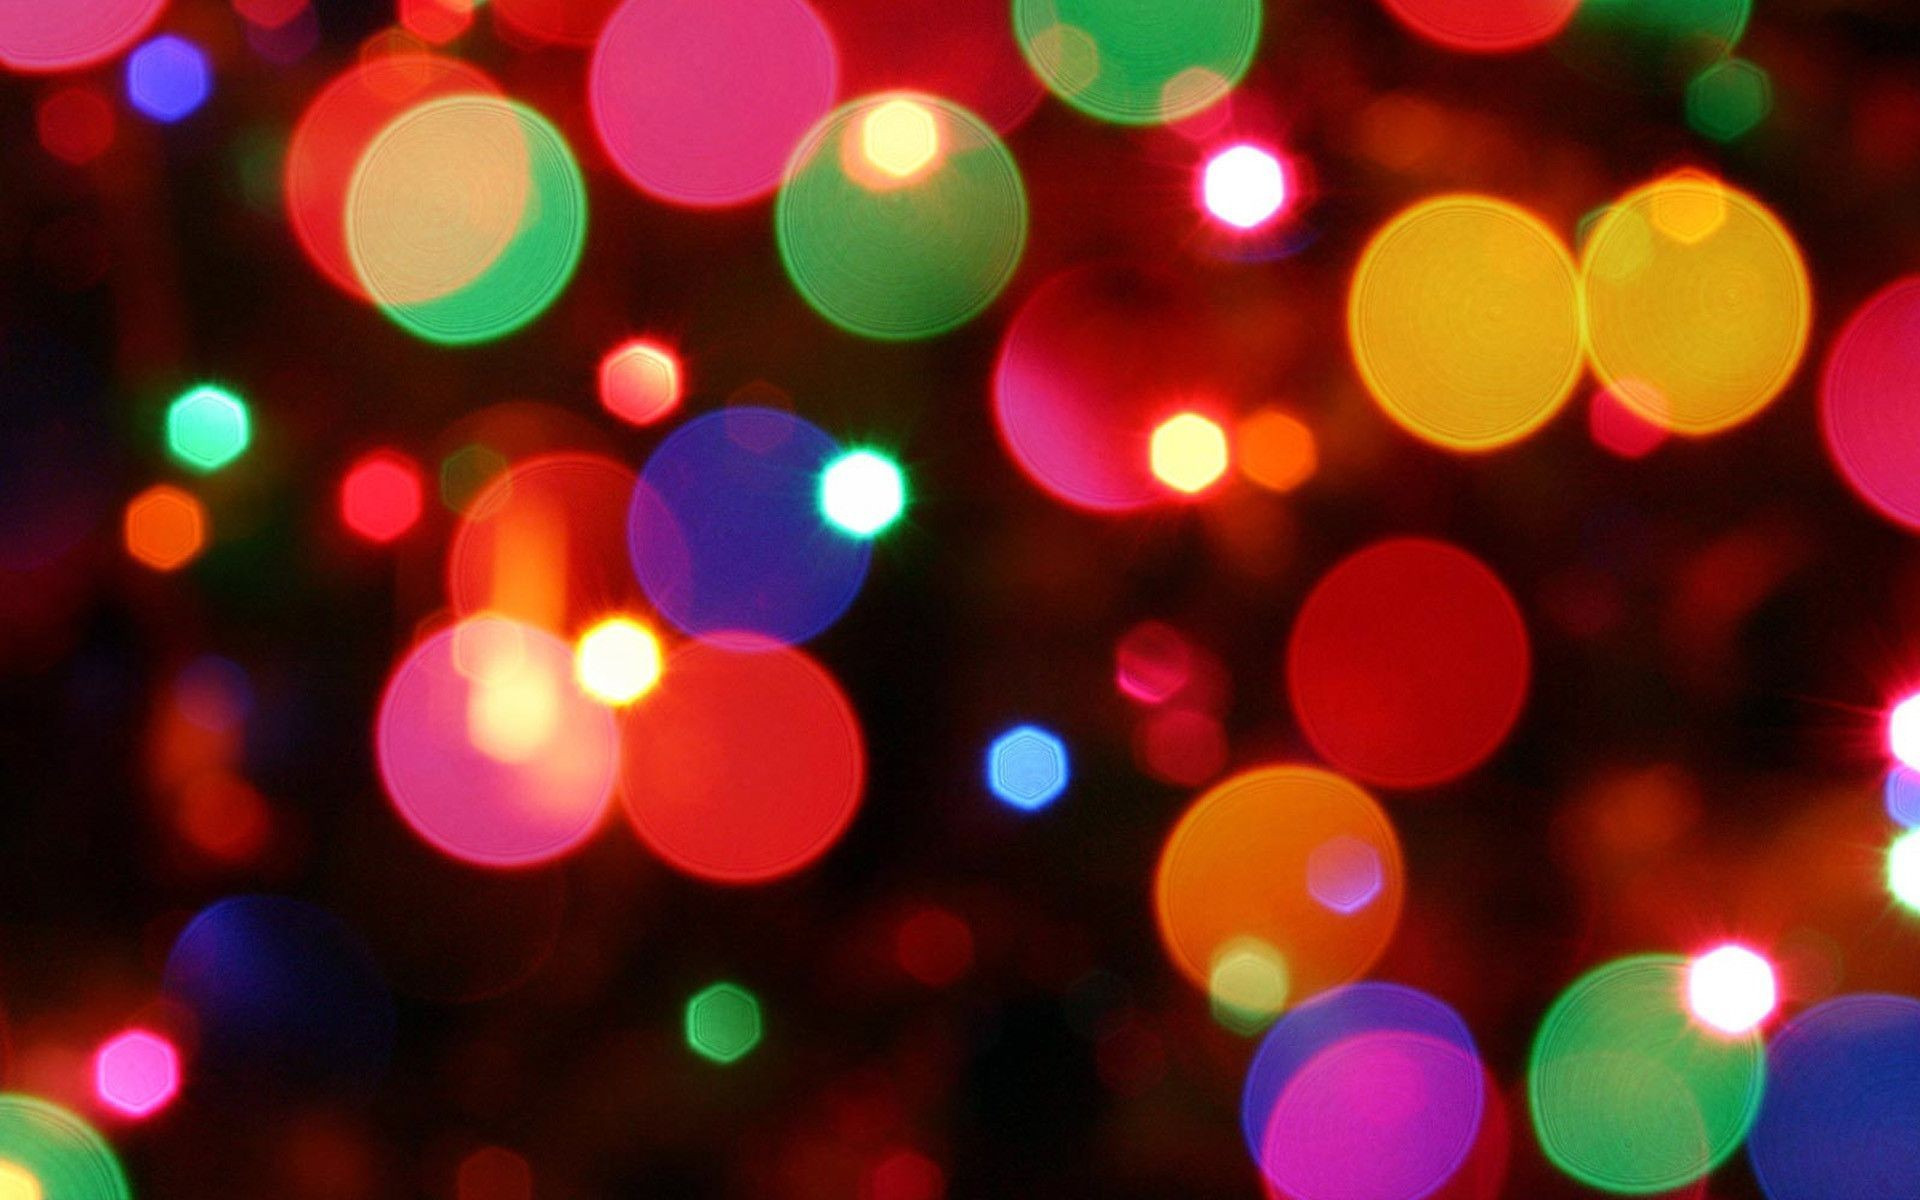 christmas lights wallpaper download free cool full hd wallpapers